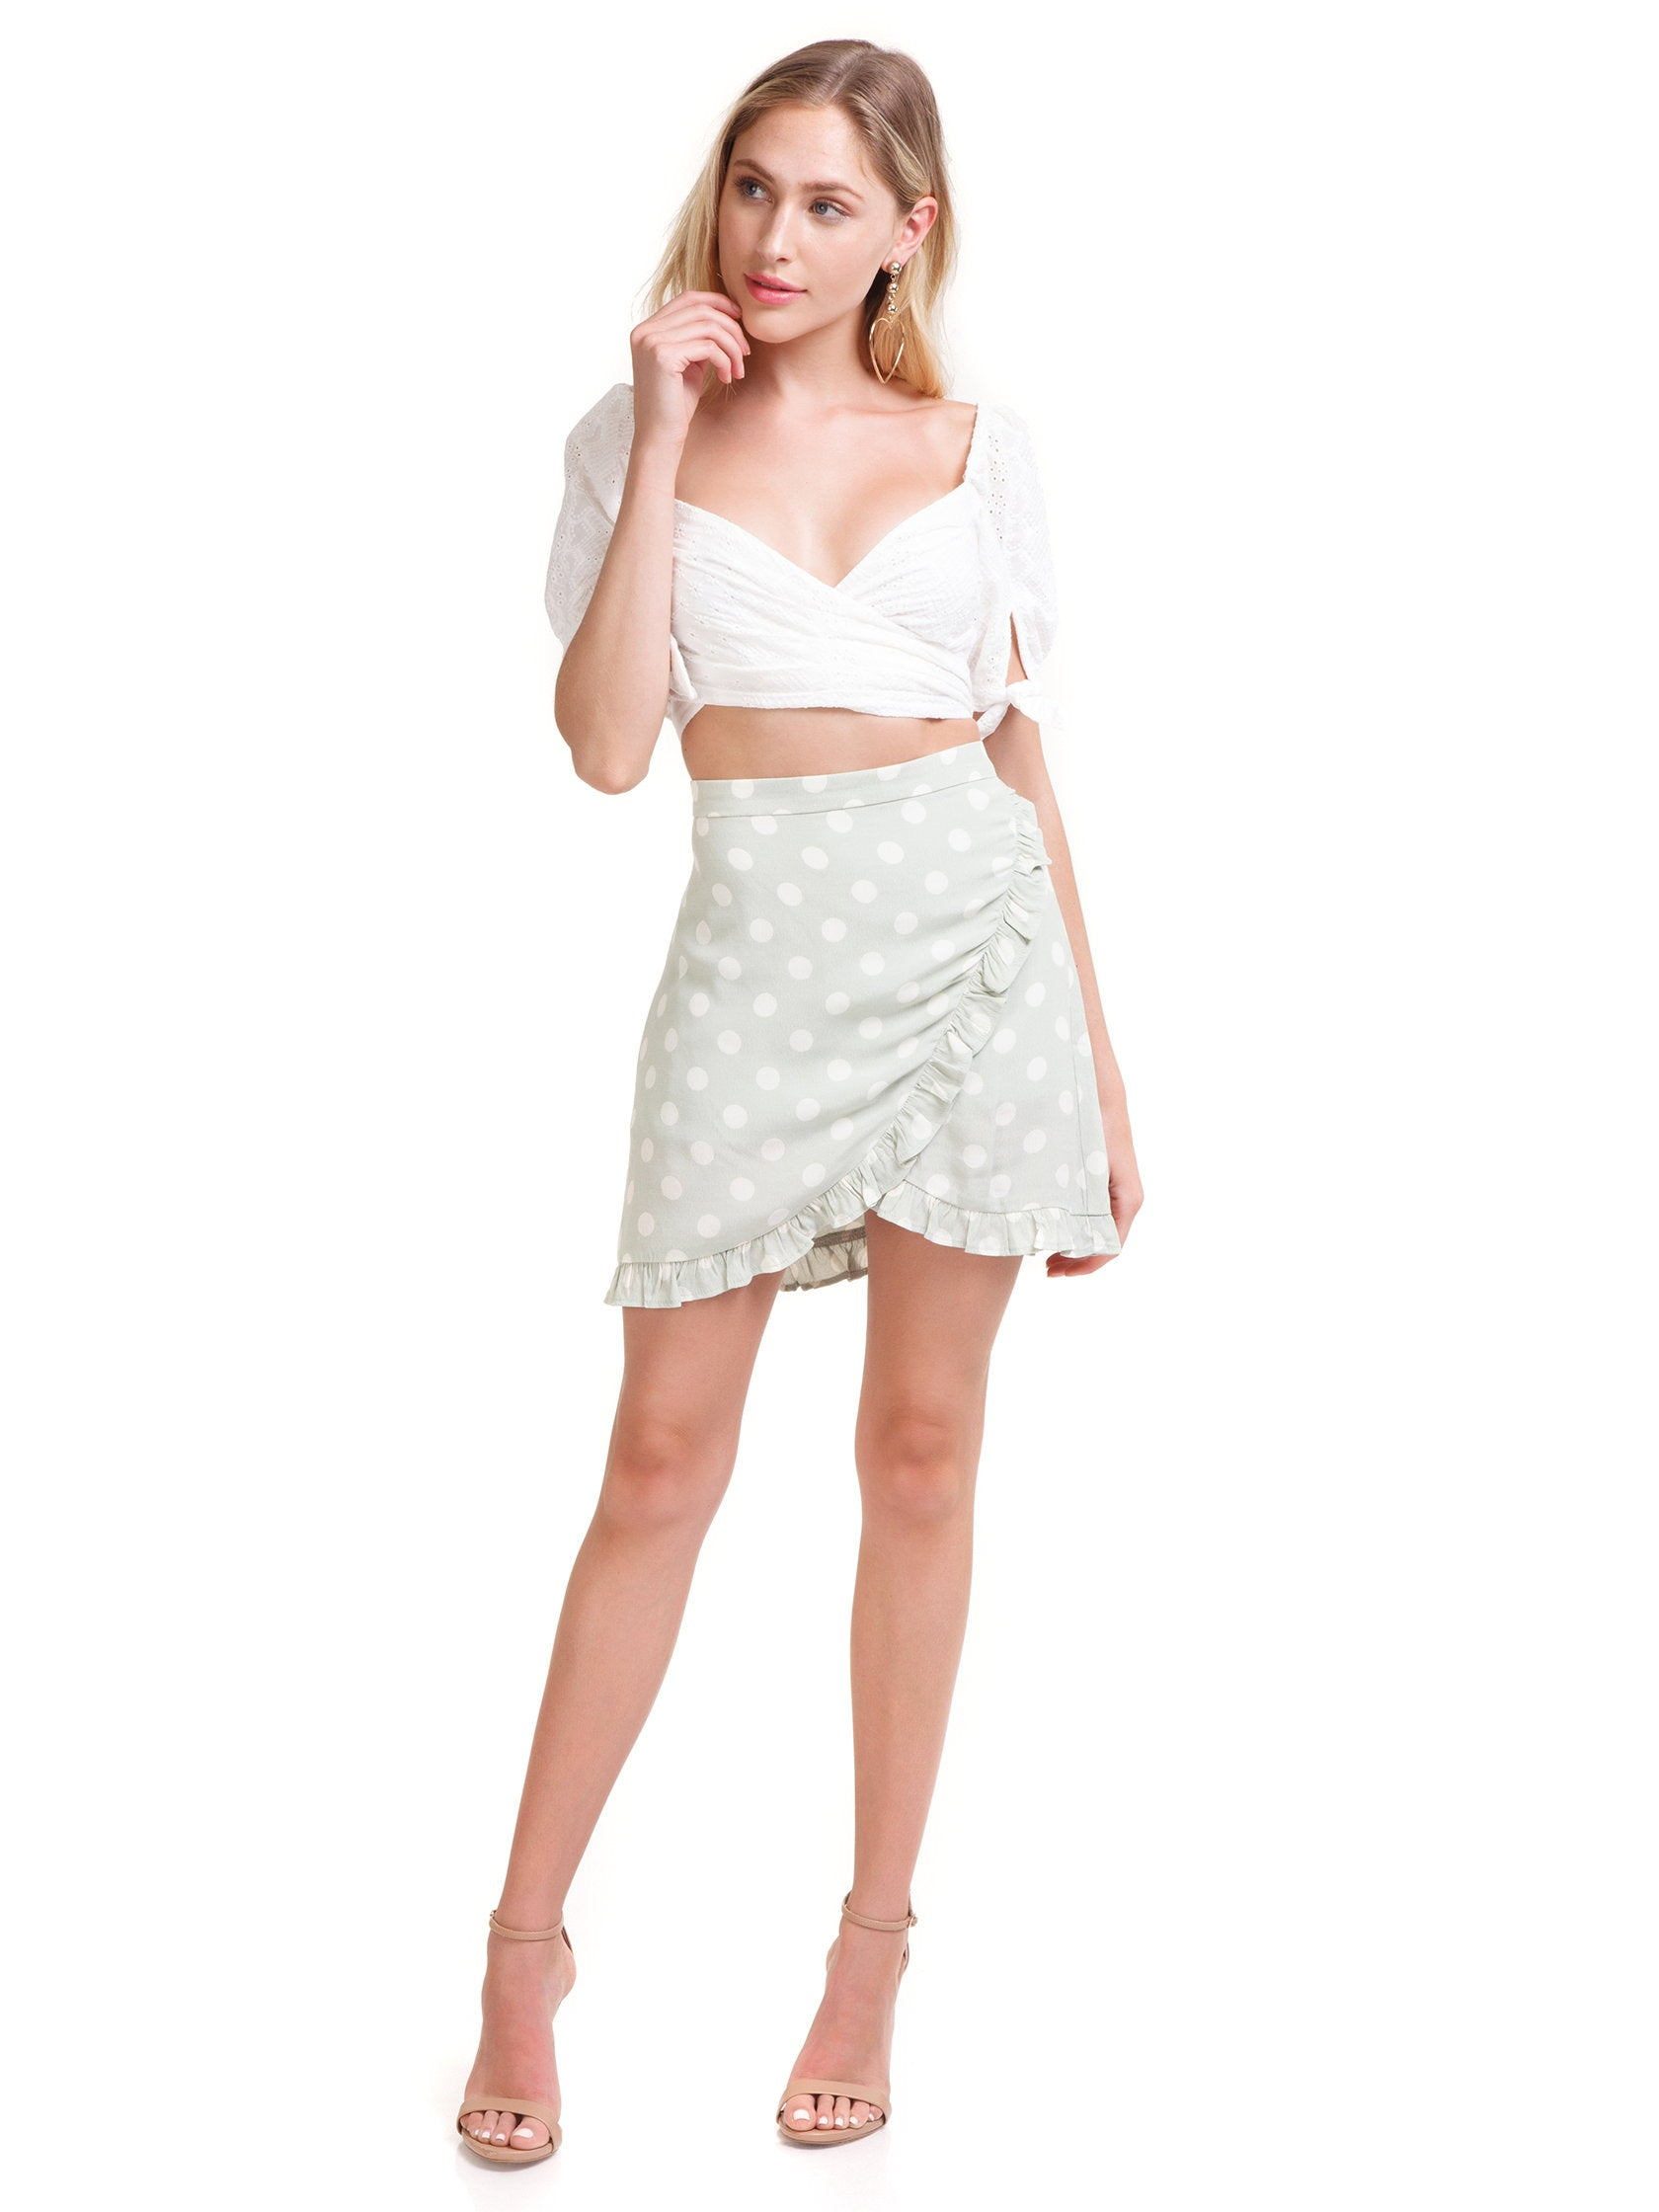 Girl outfit in a skirt rental from Capulet called Madeline Skirt